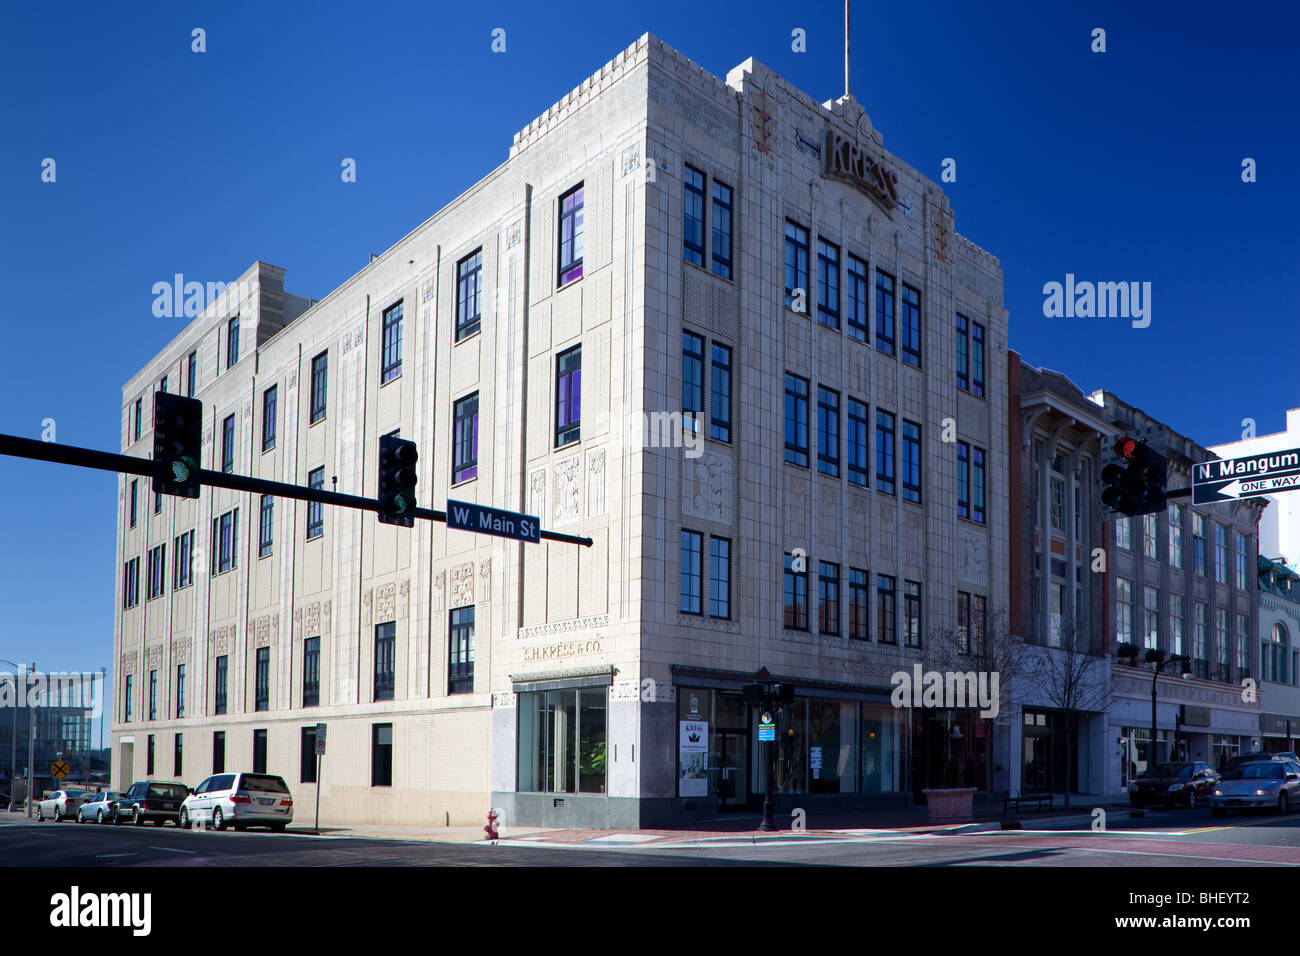 Kress Building, Durham North Carolina - Stock Image